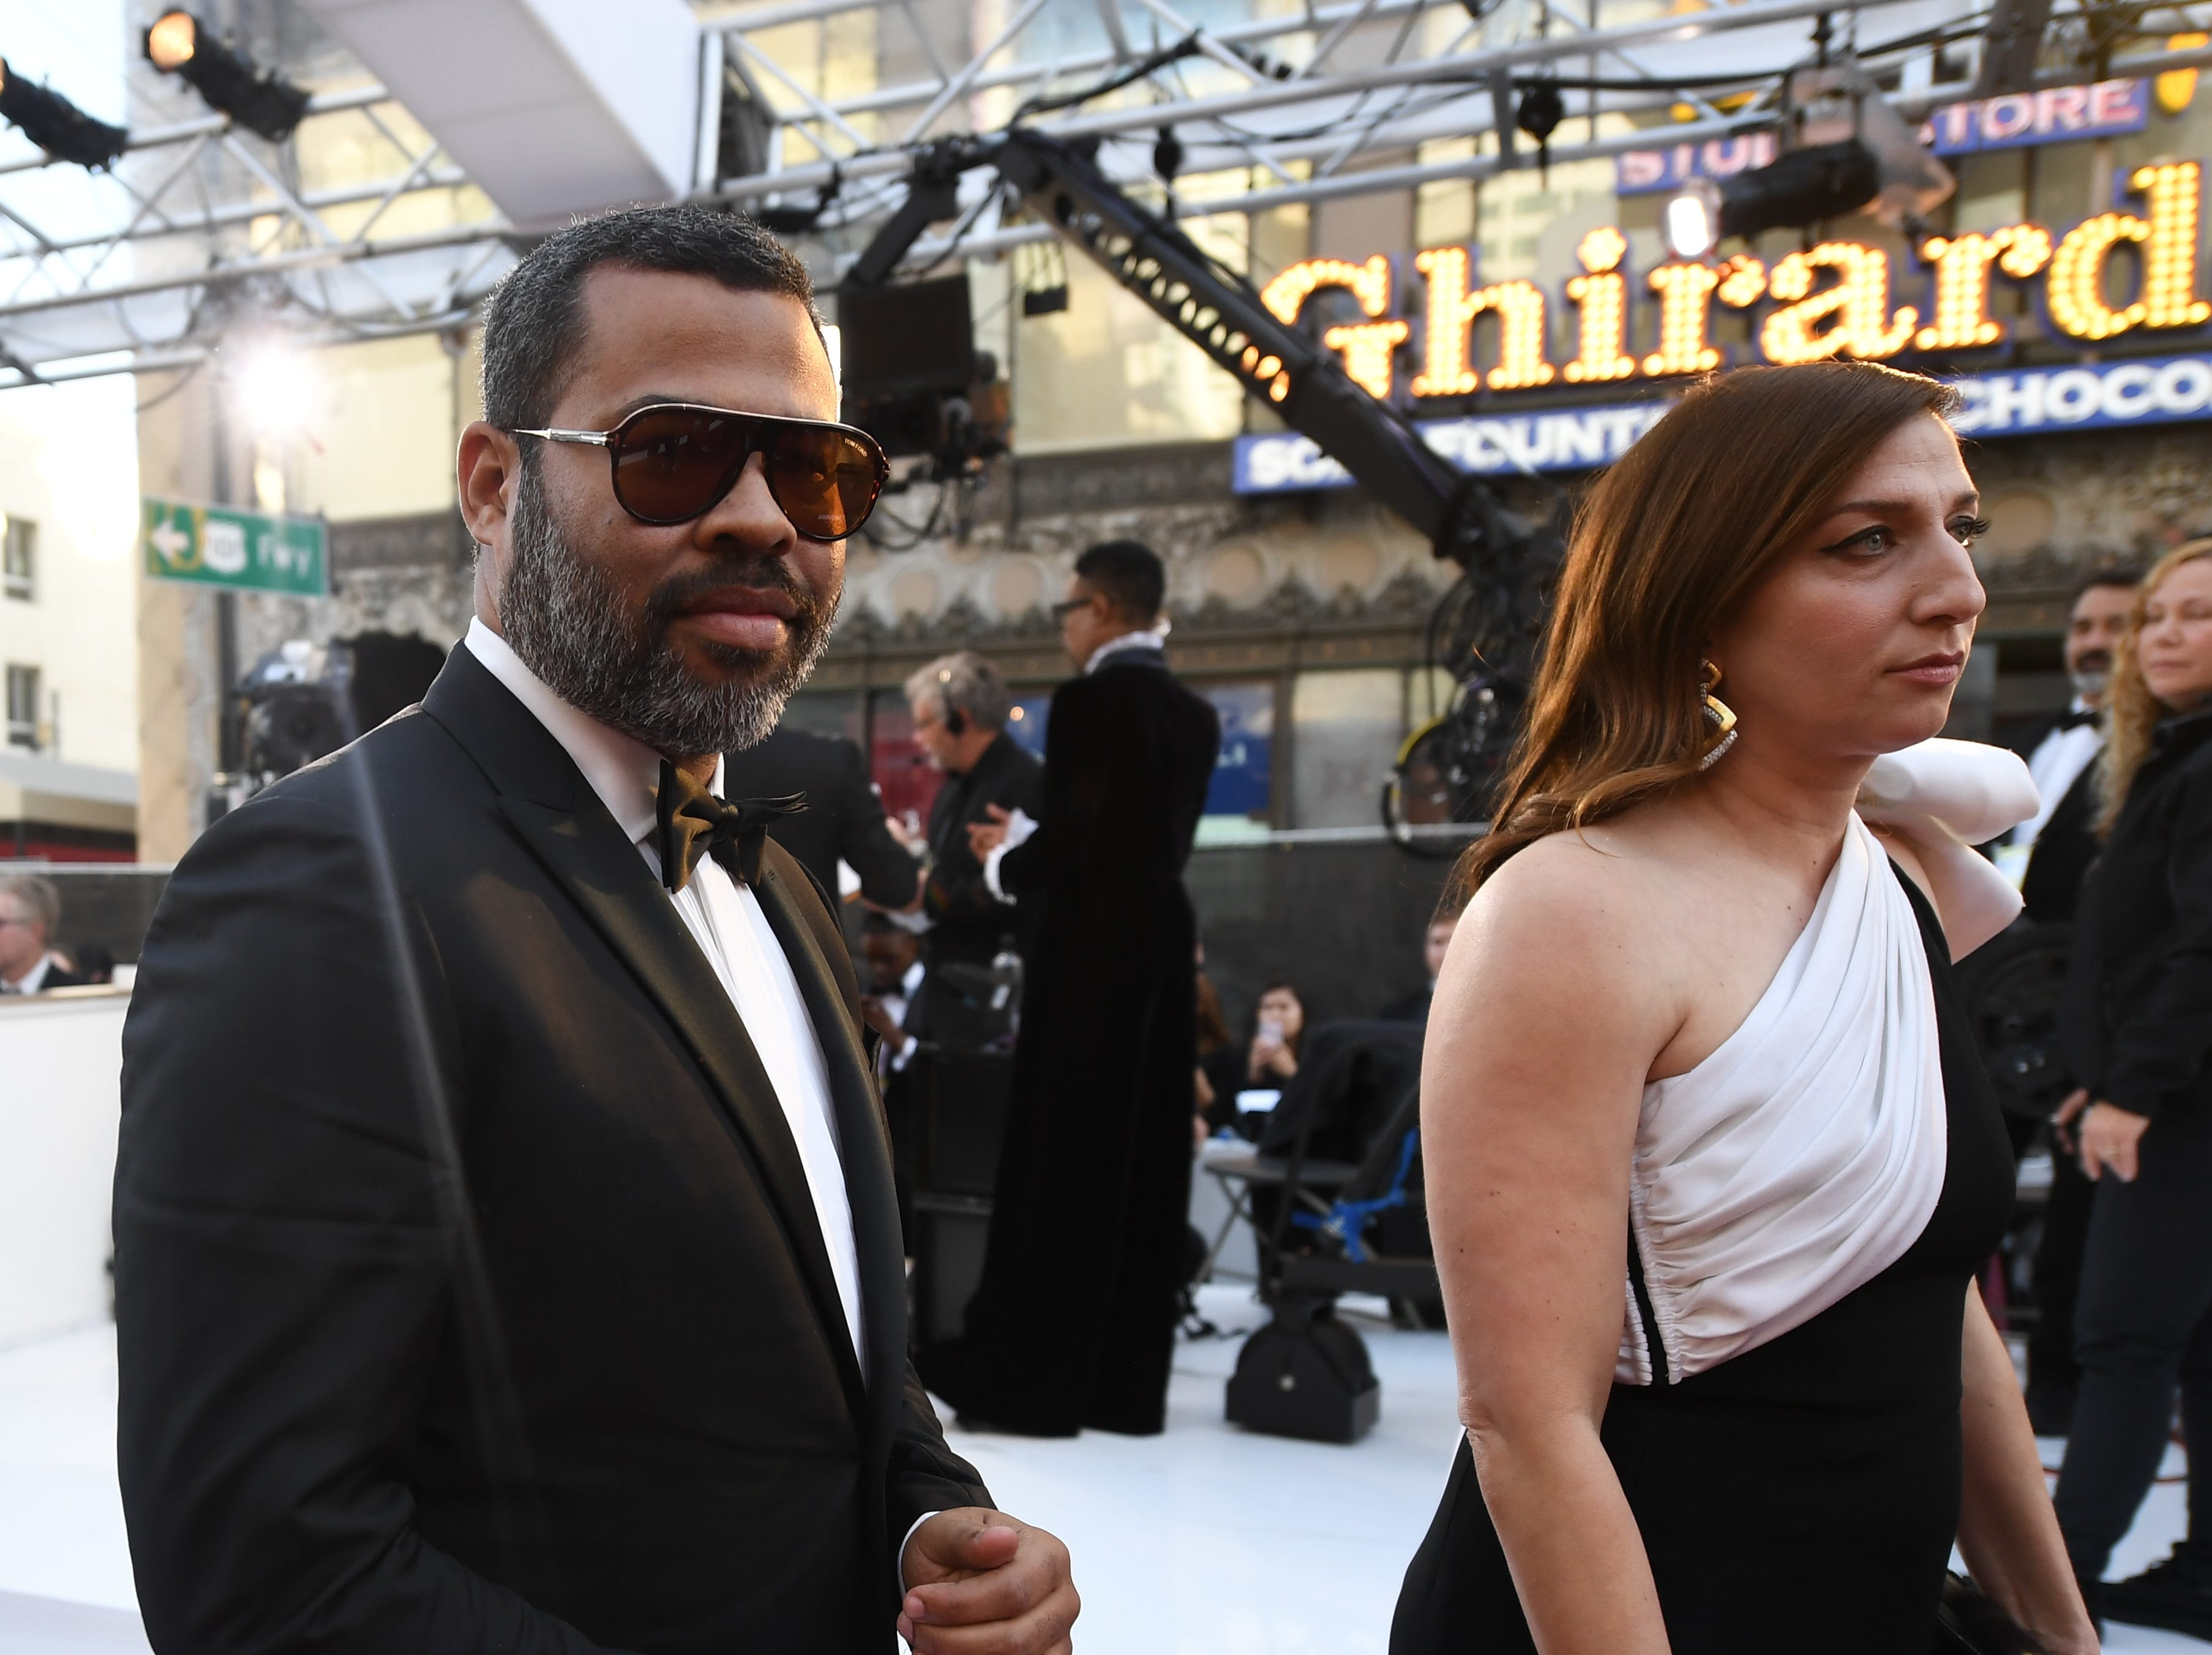 February 24, 2019; Los Angeles, CA, USA; Jordan Peele and his wife Chelsea Peretti arrive at the 91st Academy Awards at the Dolby Theatre. Mandatory Credit: Robert Hanashiro-USA TODAY NETWORK (Via OlyDrop)